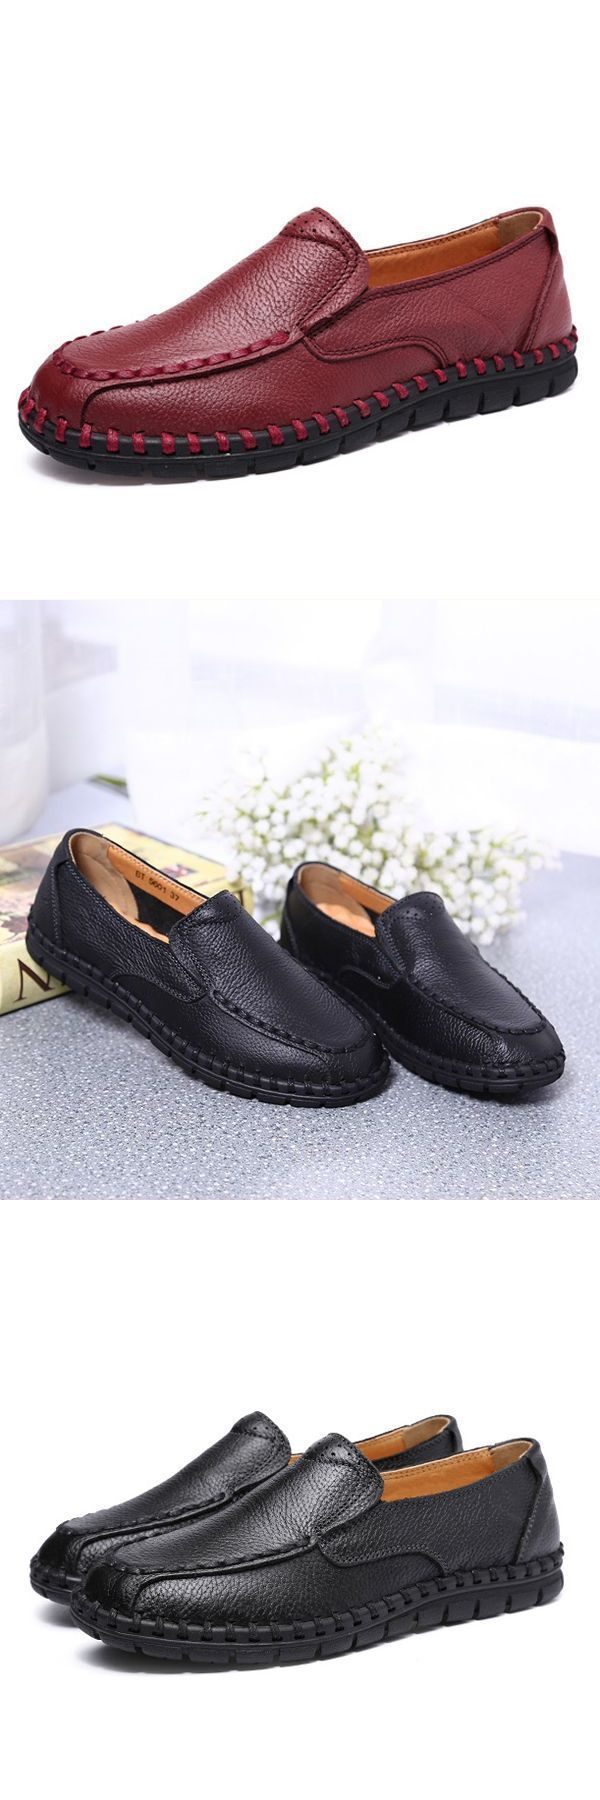 Flat navy loafers leather shoes women casual slip on soft outdoor flat loafers #flat #green #shoe #flat #shoe #cabinet #flat #shoe #nike #flat #shoe #styles